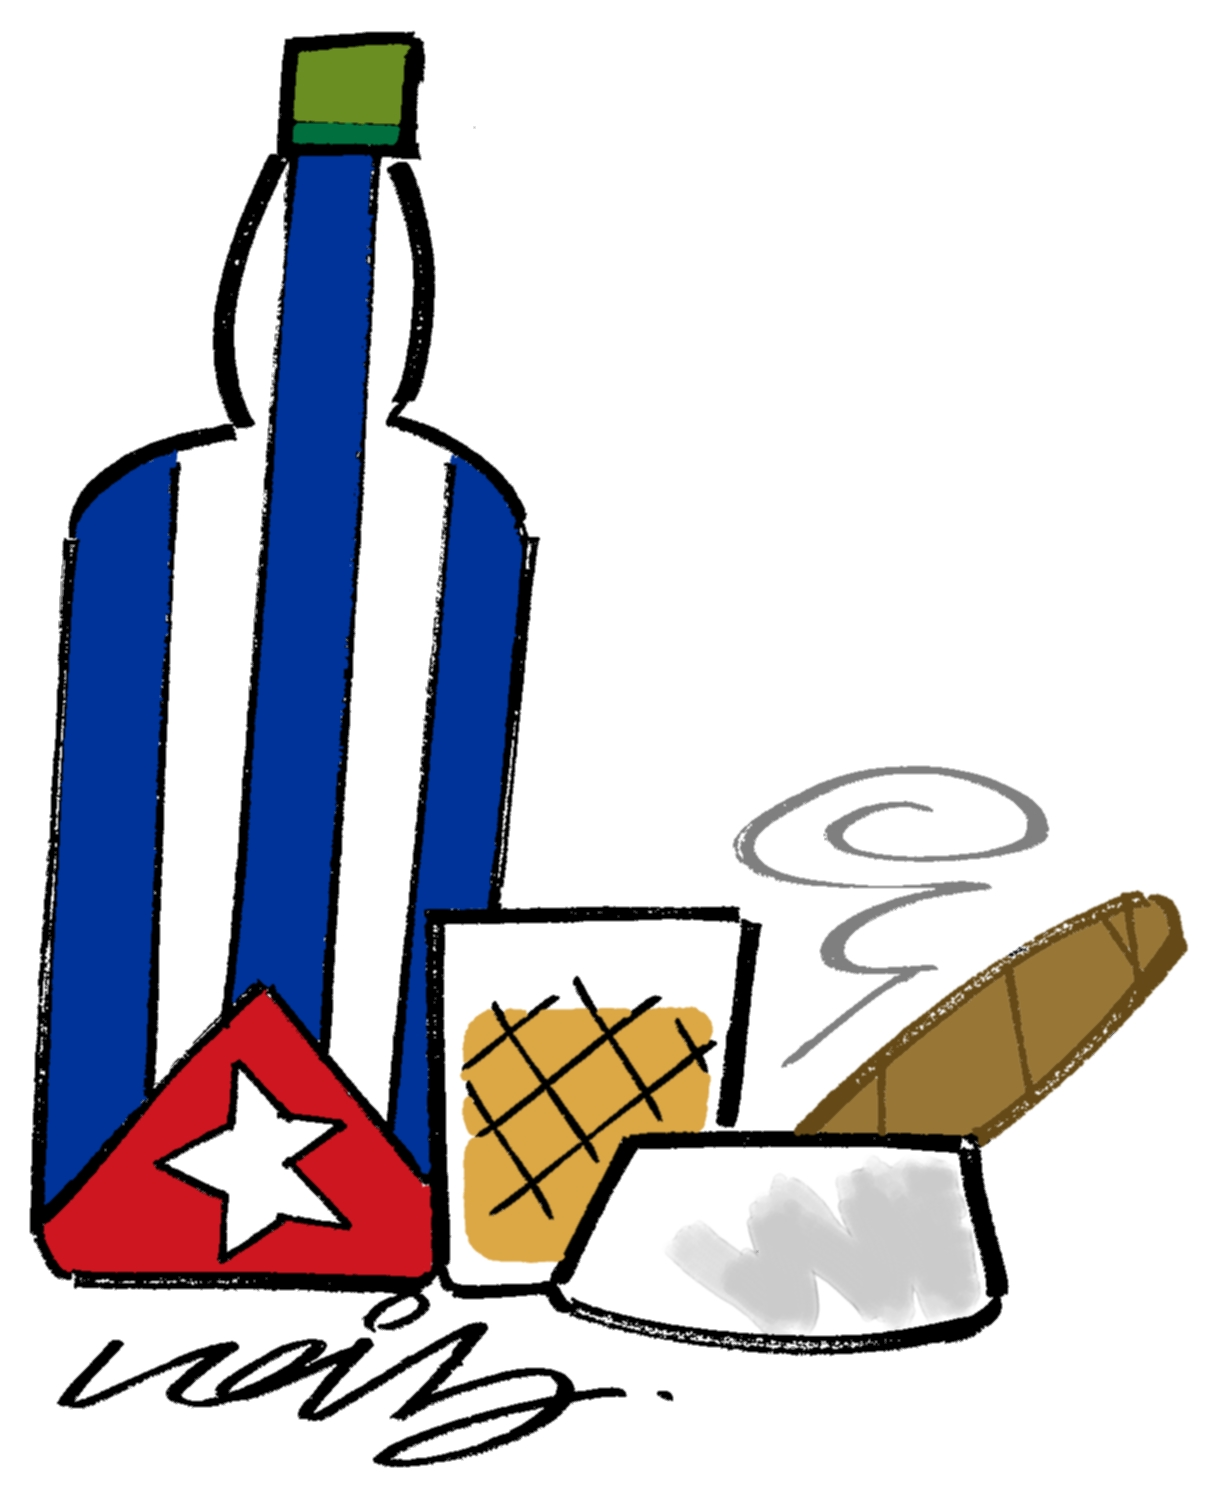 Cuban Cigar cartoon - Whisky and cigars